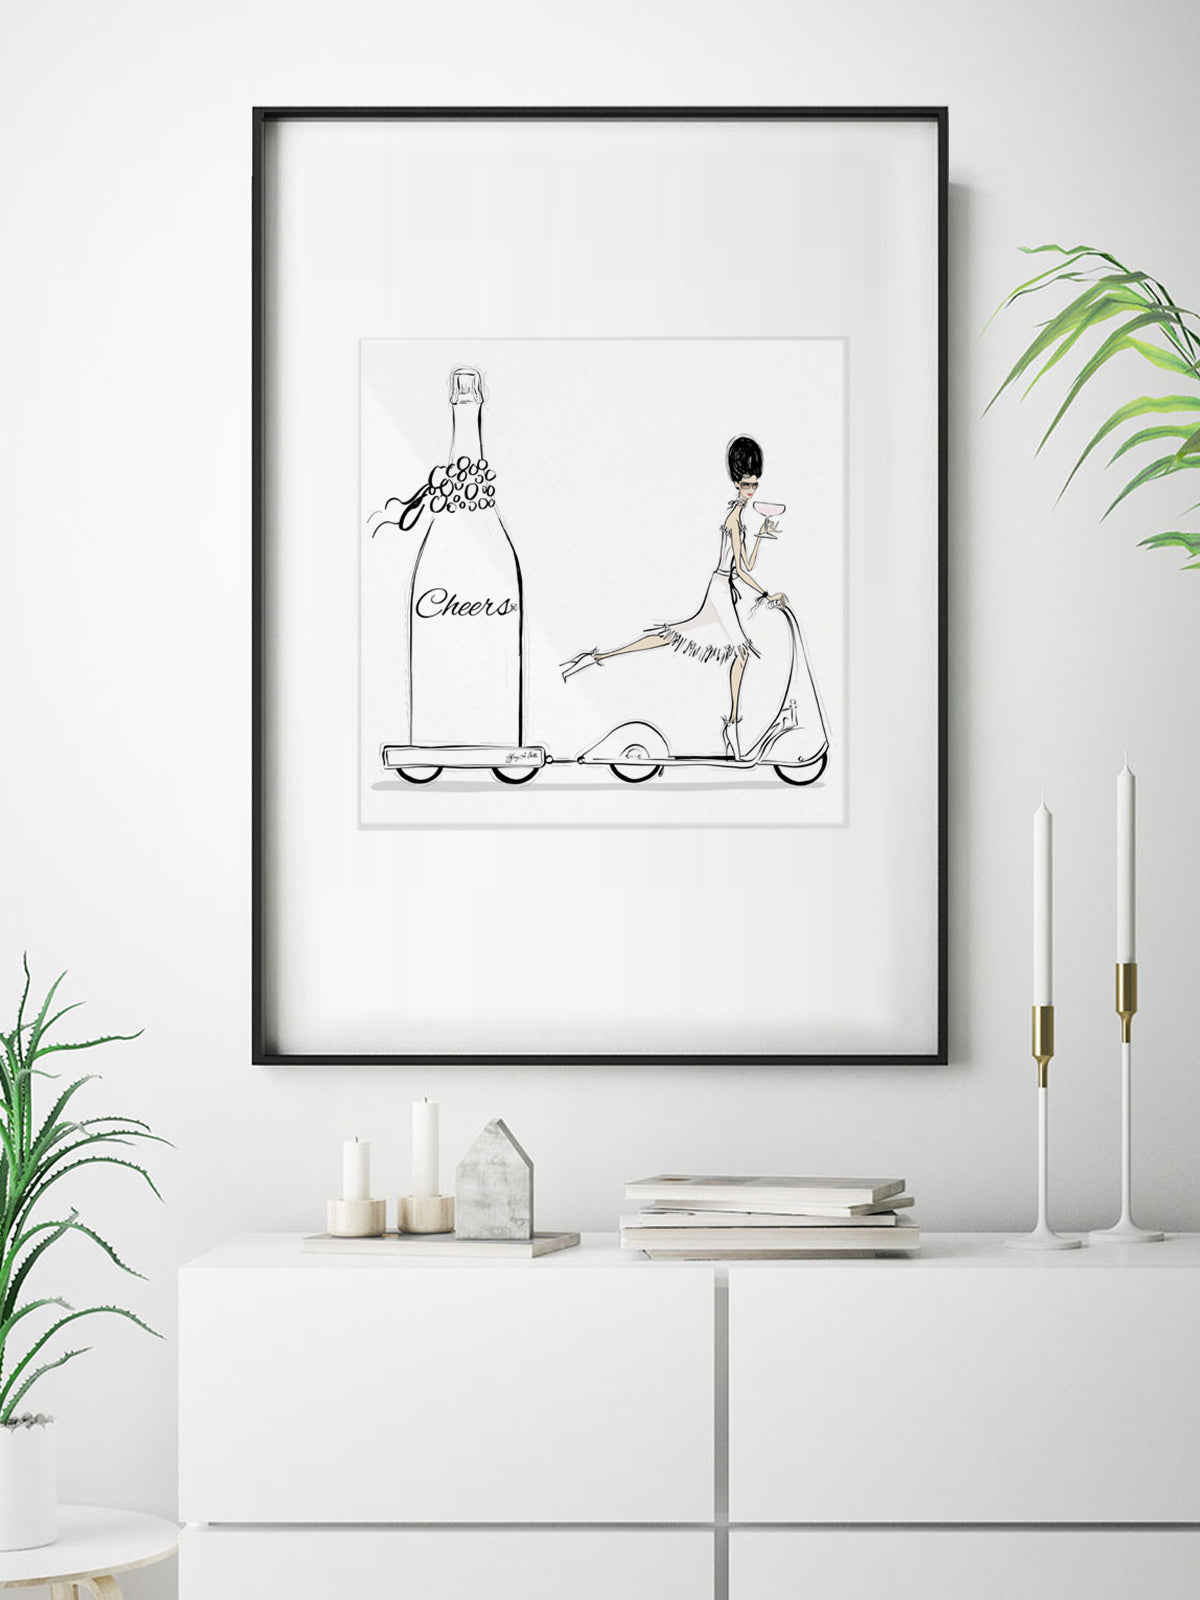 Cheers on Wheels - Illustration - Limited Edition Print - Tiffany La Belle